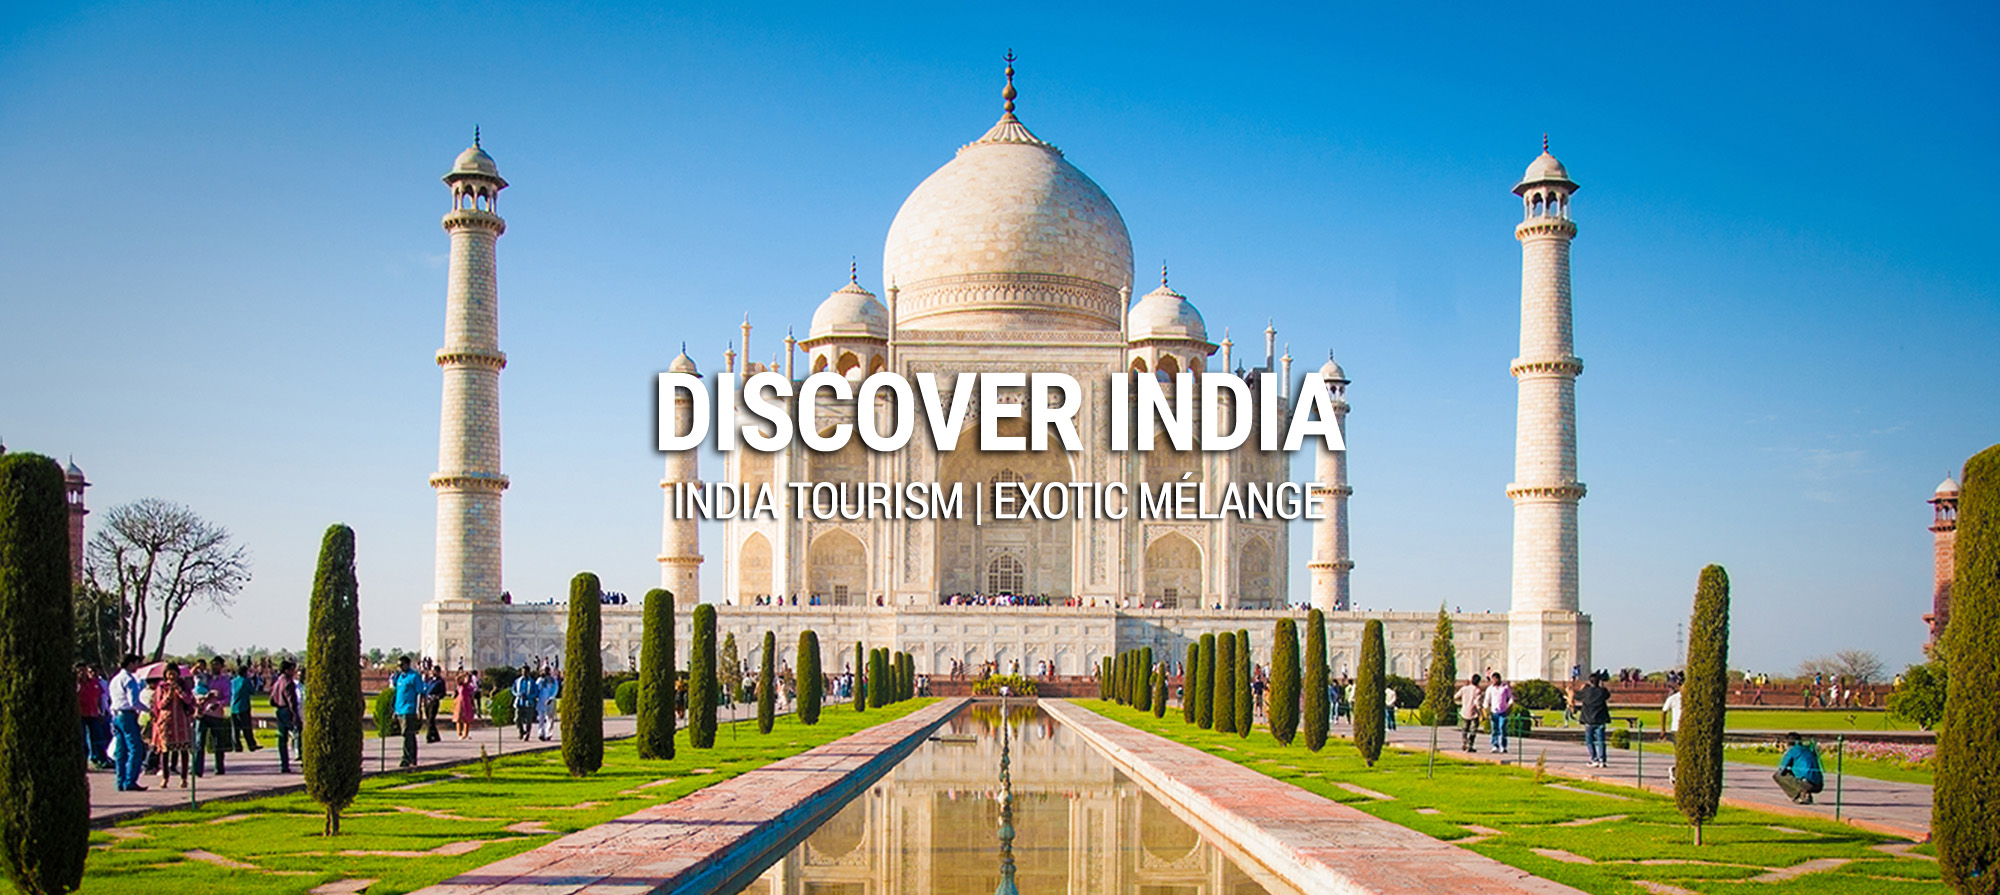 Glorious India - Discover India